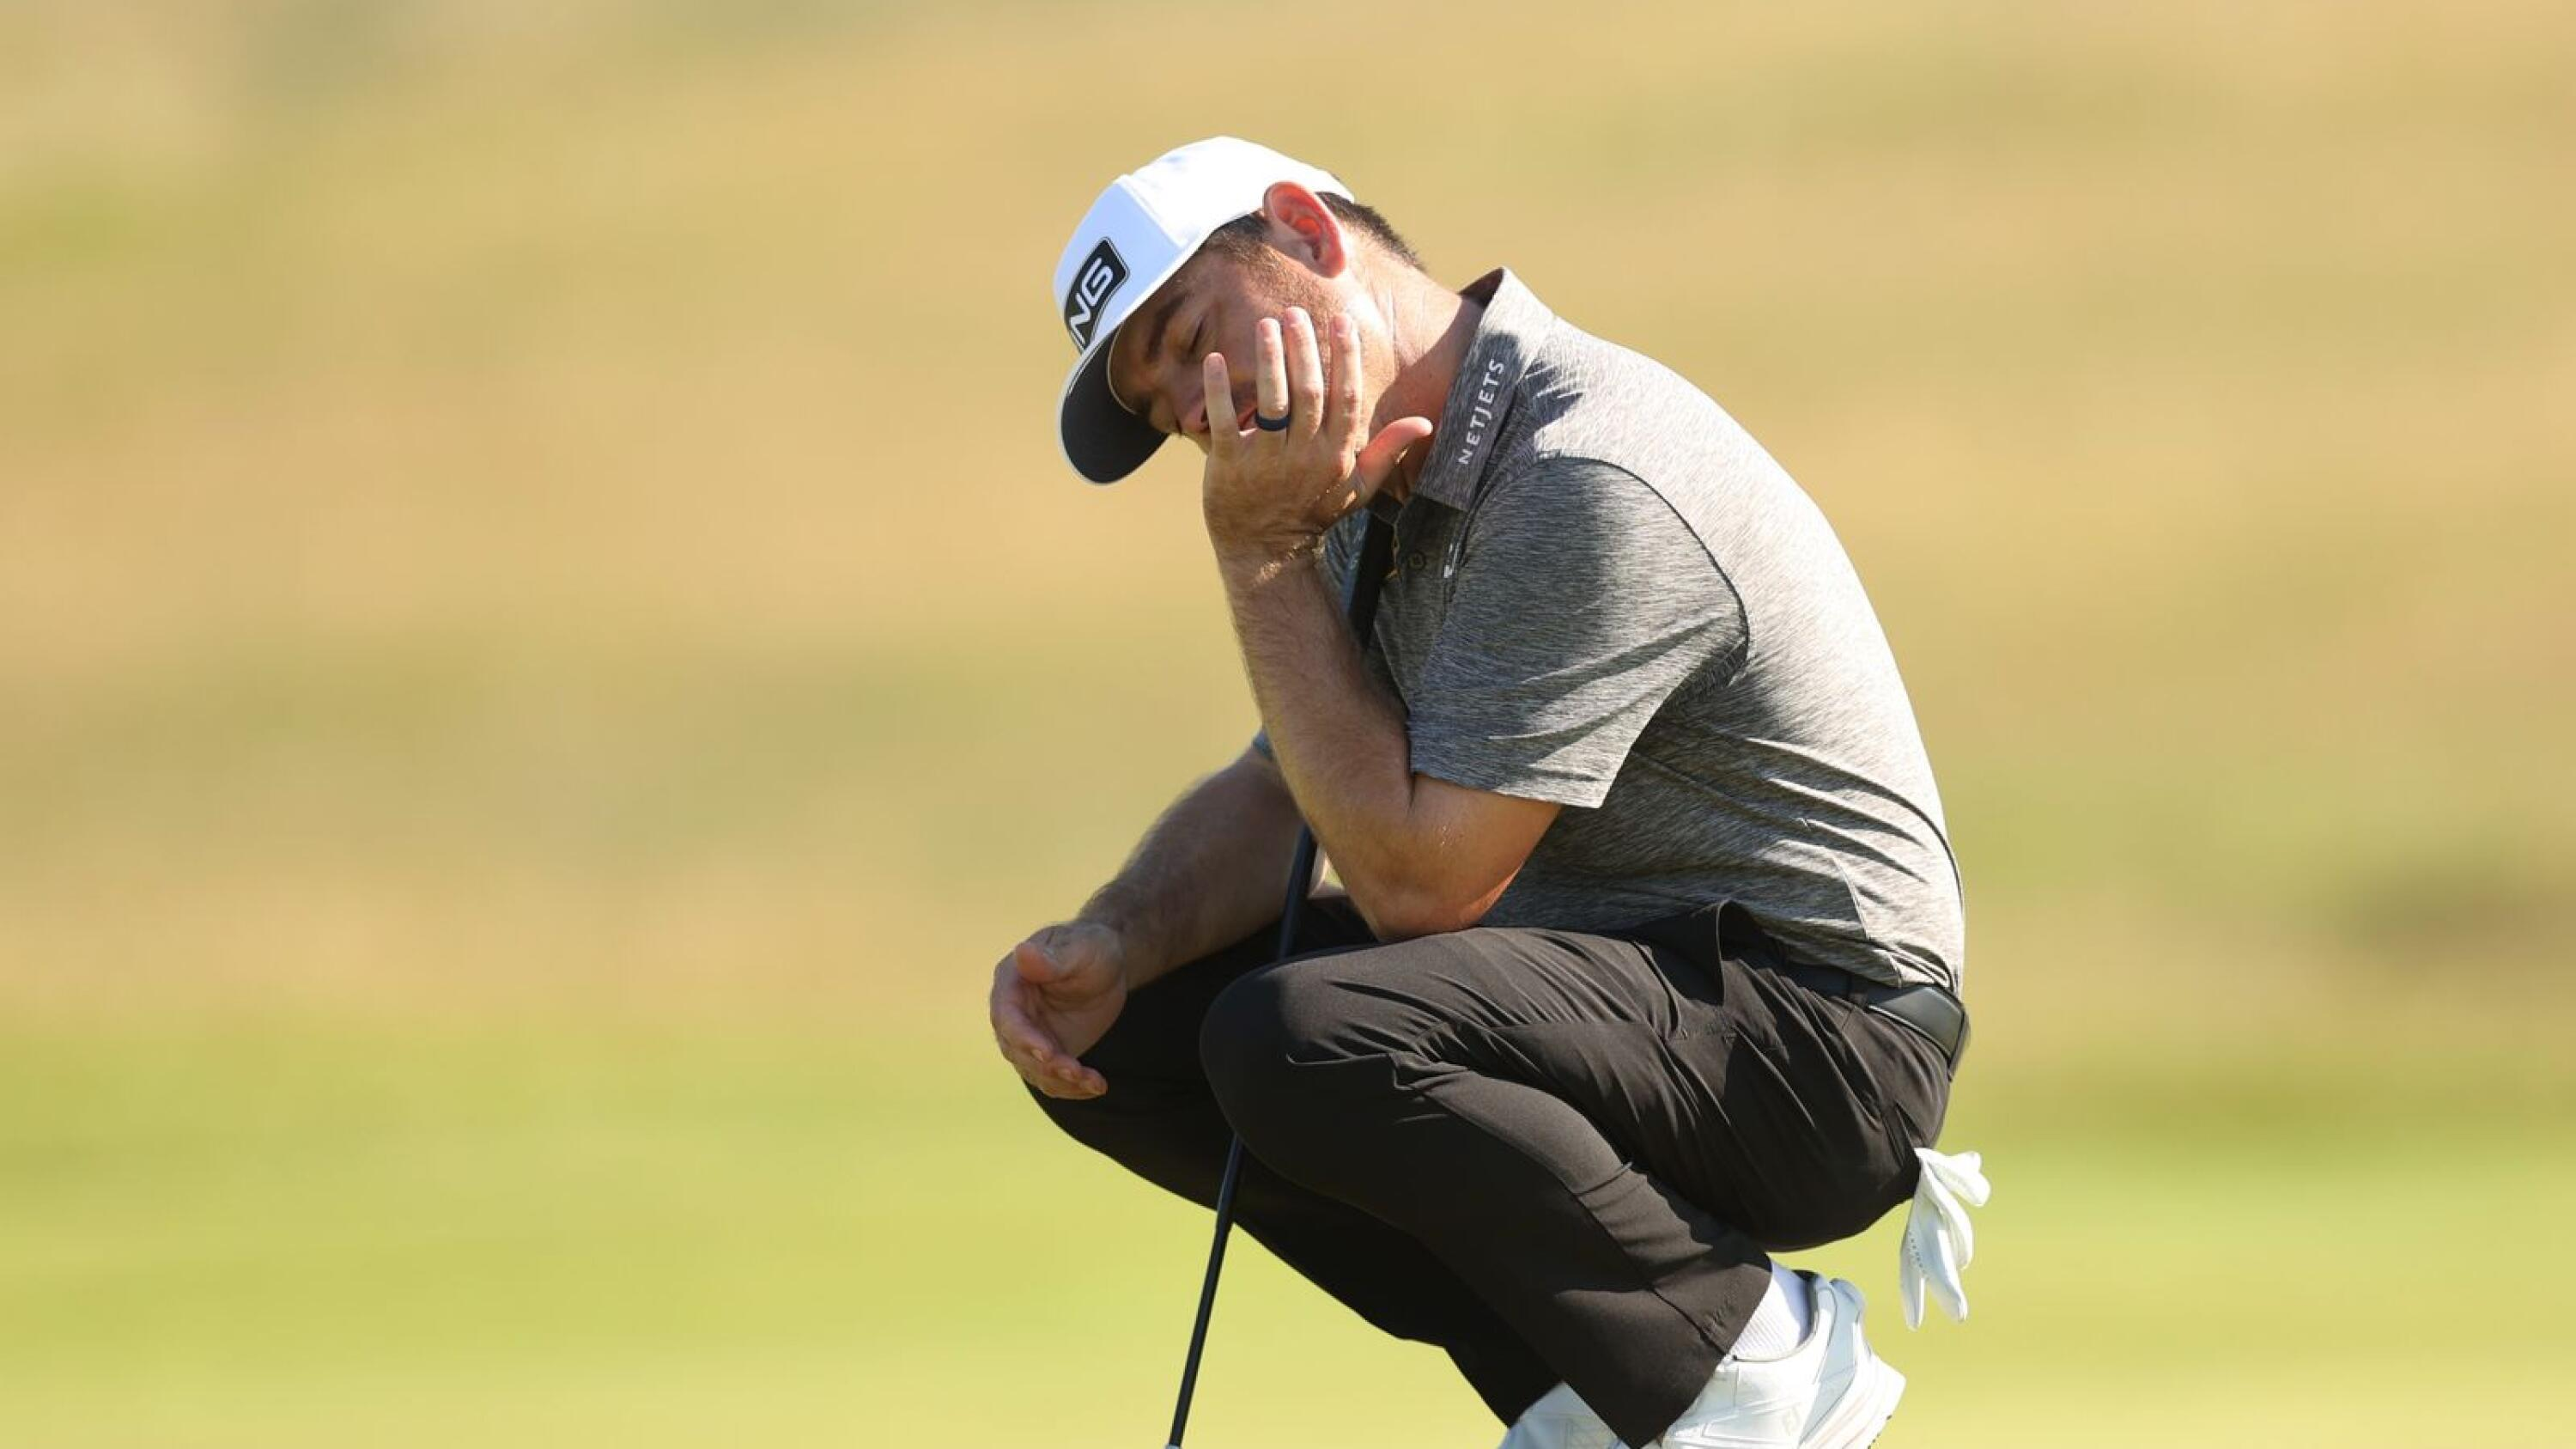 South Africa's Louis Oosthuizen reacts during the final round of the Open Championship